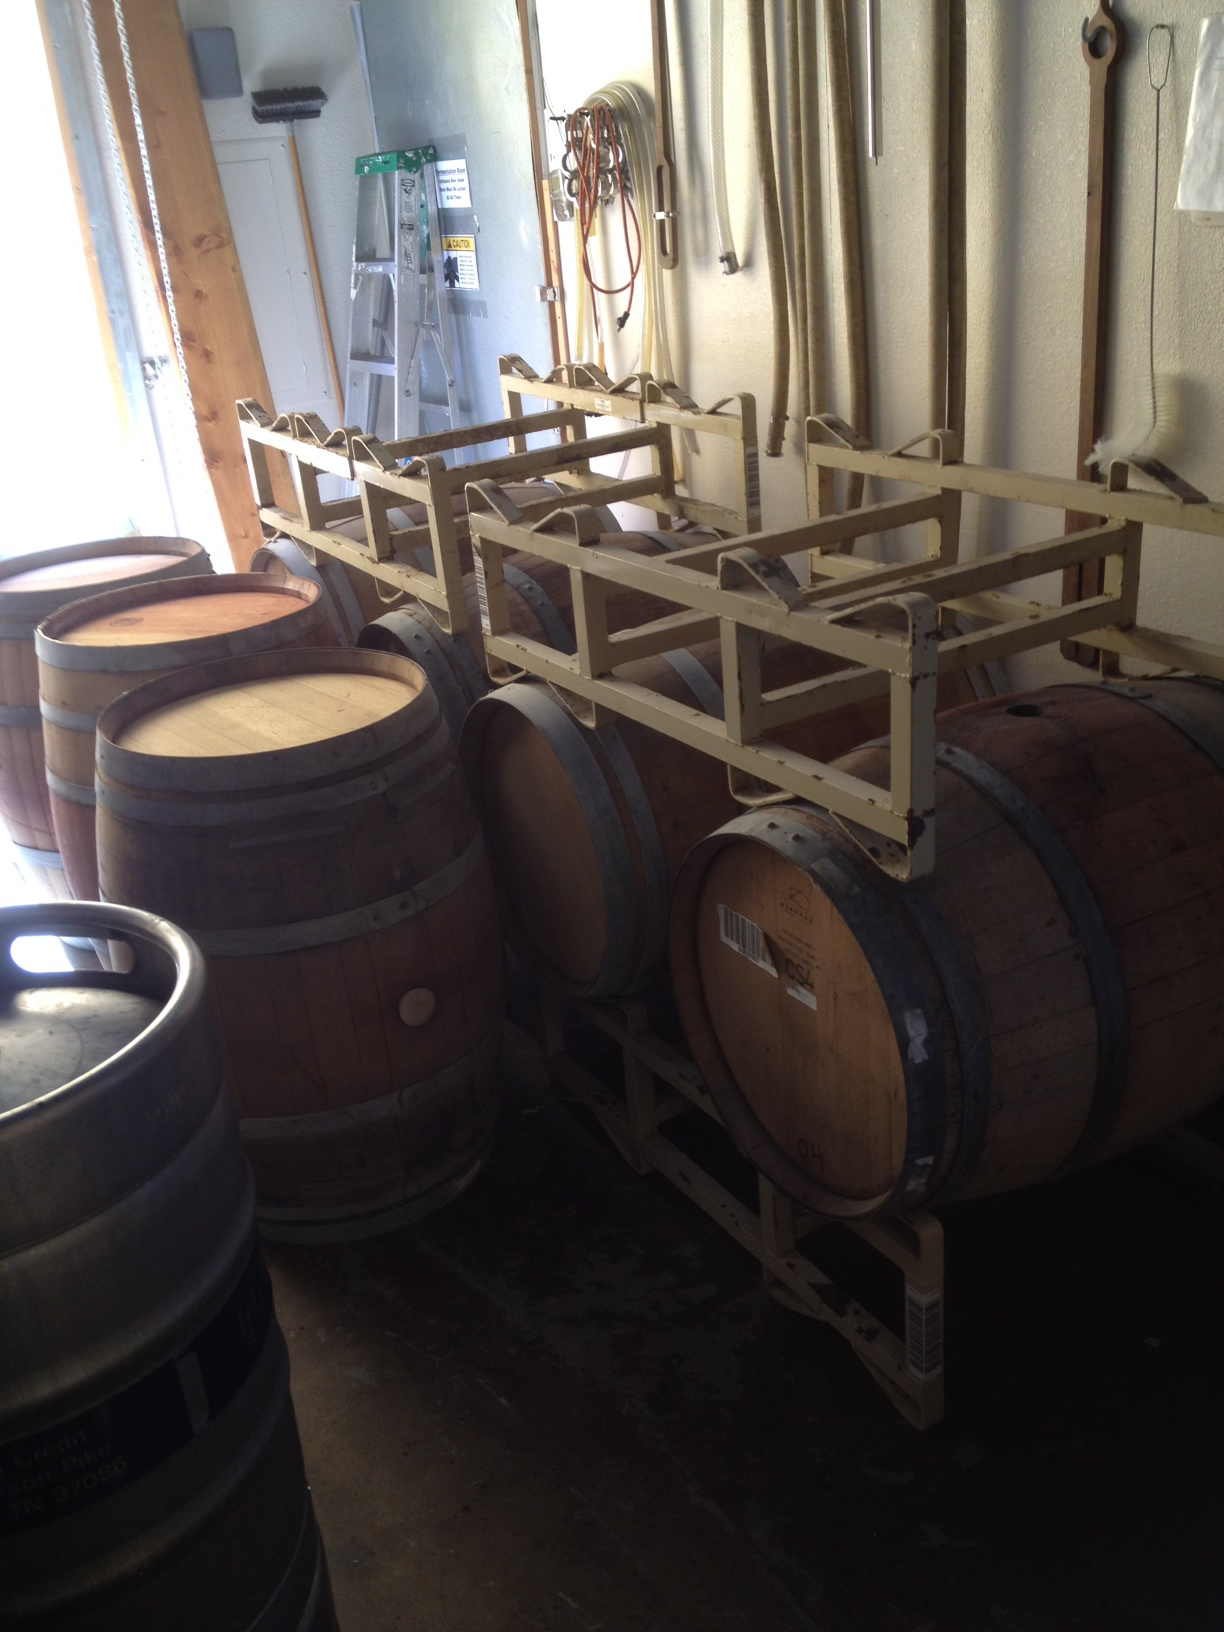 We now have 16 barrels in our little brewery. Some of these barrels will be used for our 1 year anniversary beer! 8 months away!!